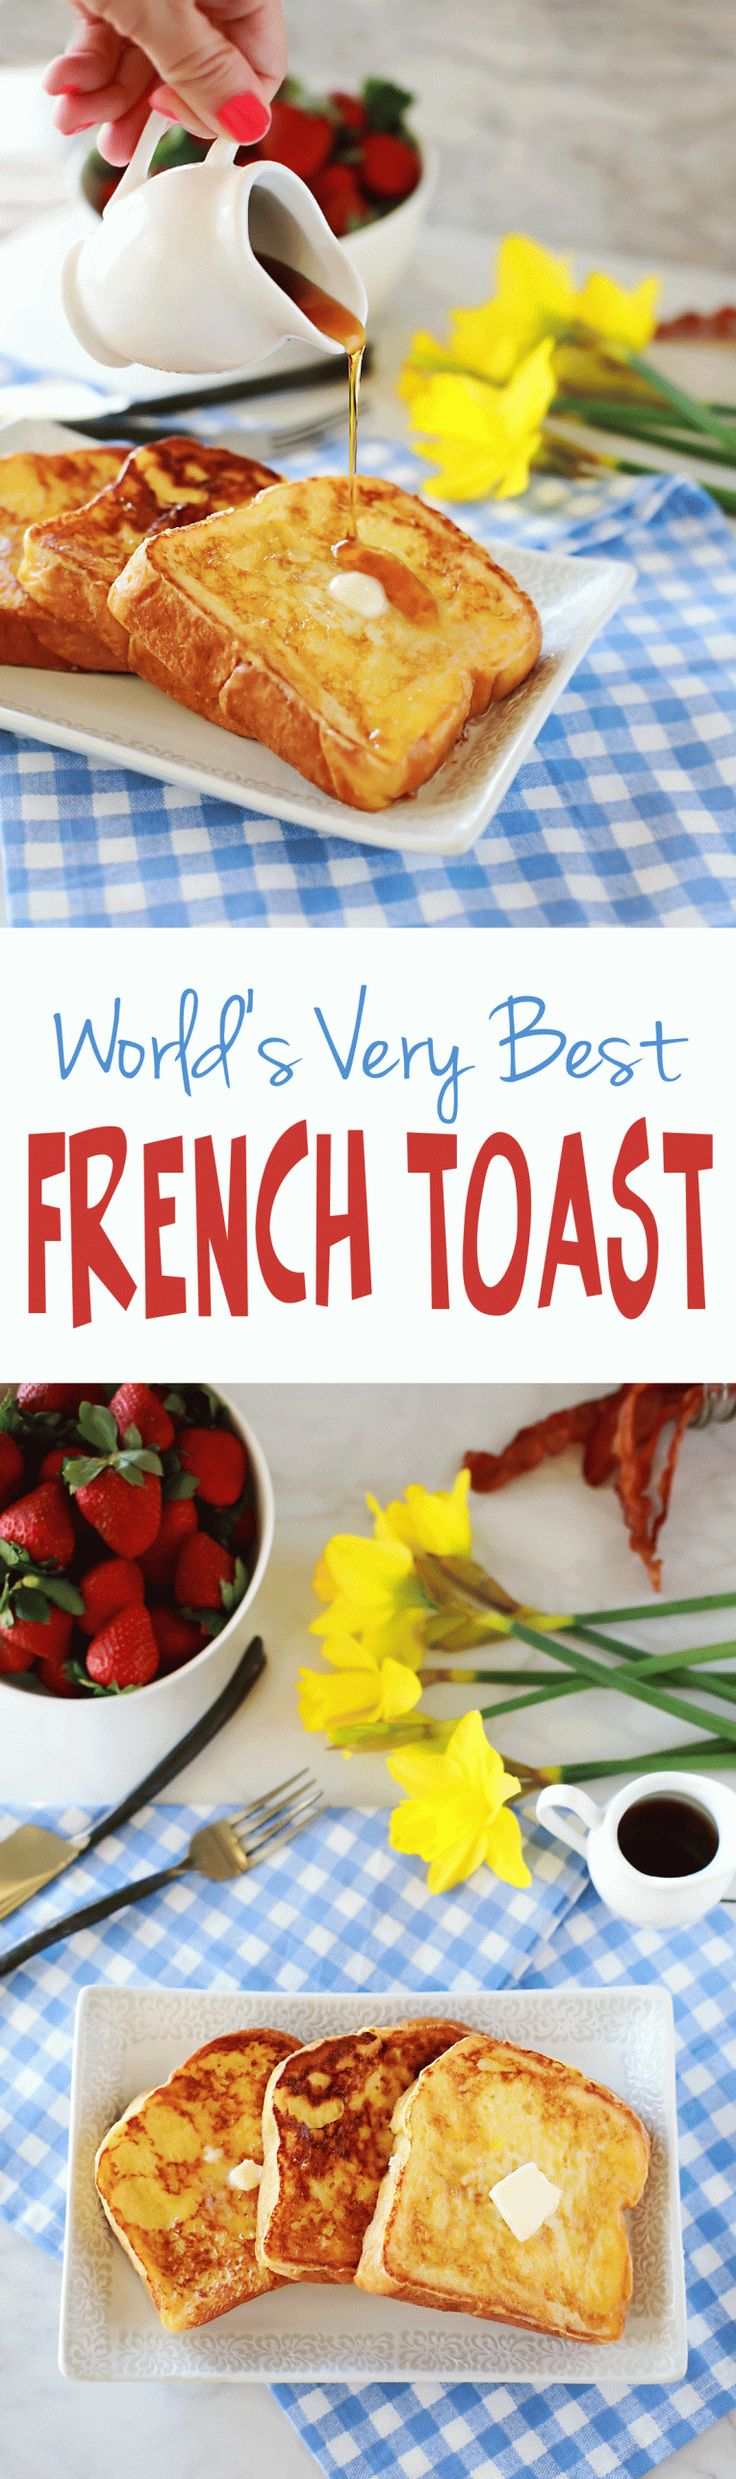 Amazing French Toast with easy thick batter recipe by Flirting with Flavor. This was the best French Toast I have ever had!